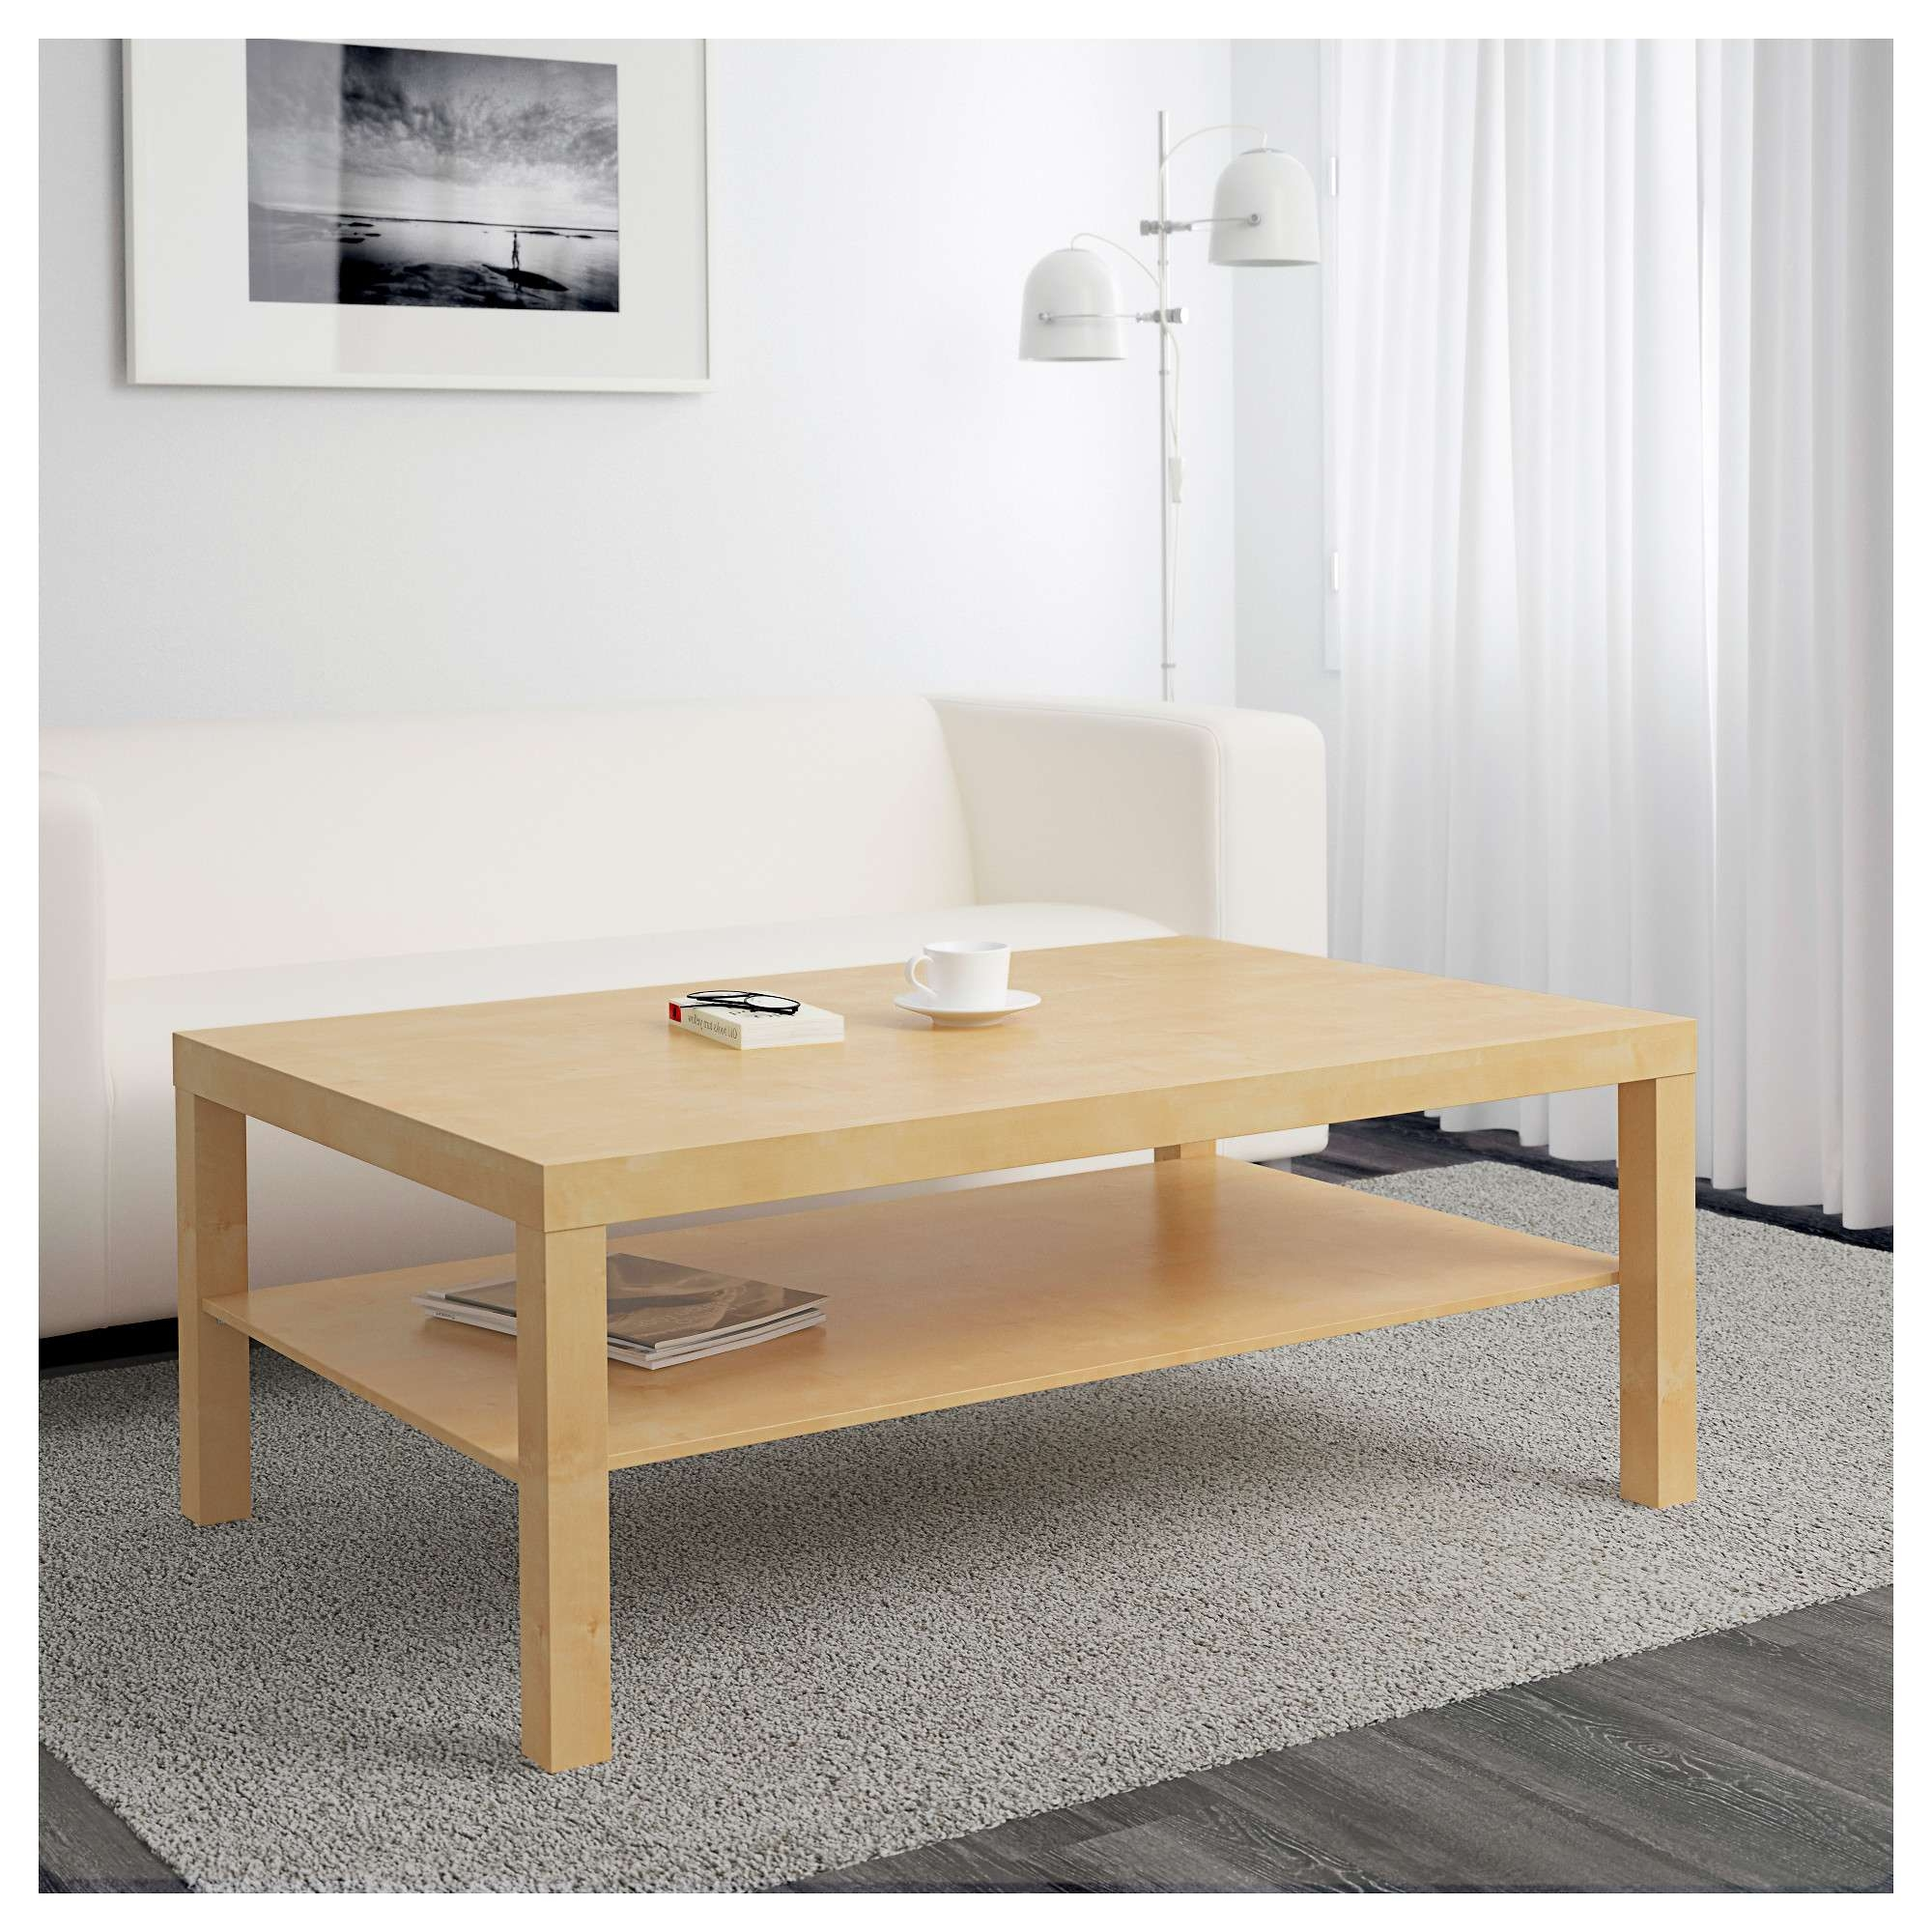 Lack Coffee Table – Birch Effect – Ikea Within Most Current Birch Coffee Tables (View 3 of 20)